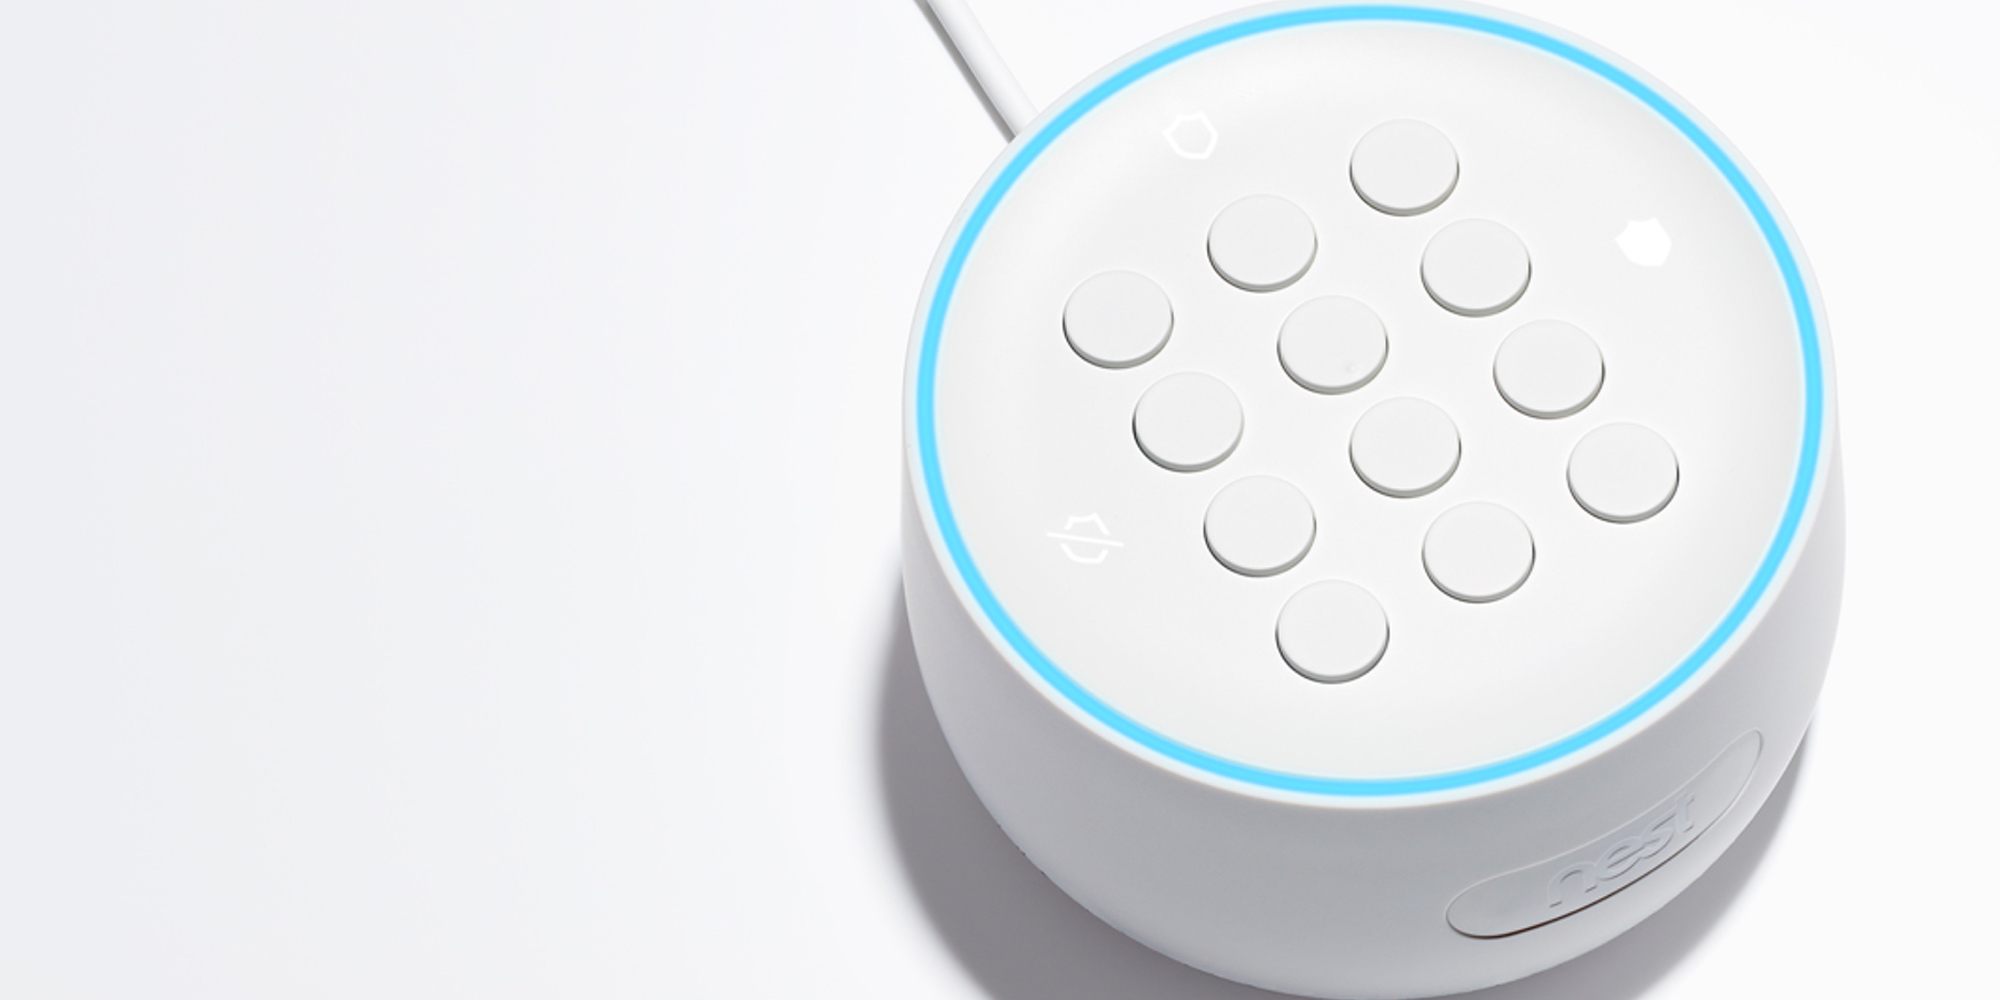 9to5Toys Mittagspause: Nest Secure Alarm System $ 319, Samsung 256 GB MicroSDXC $ 90, ecobee4 Smart Thermostat $ 200, mehr